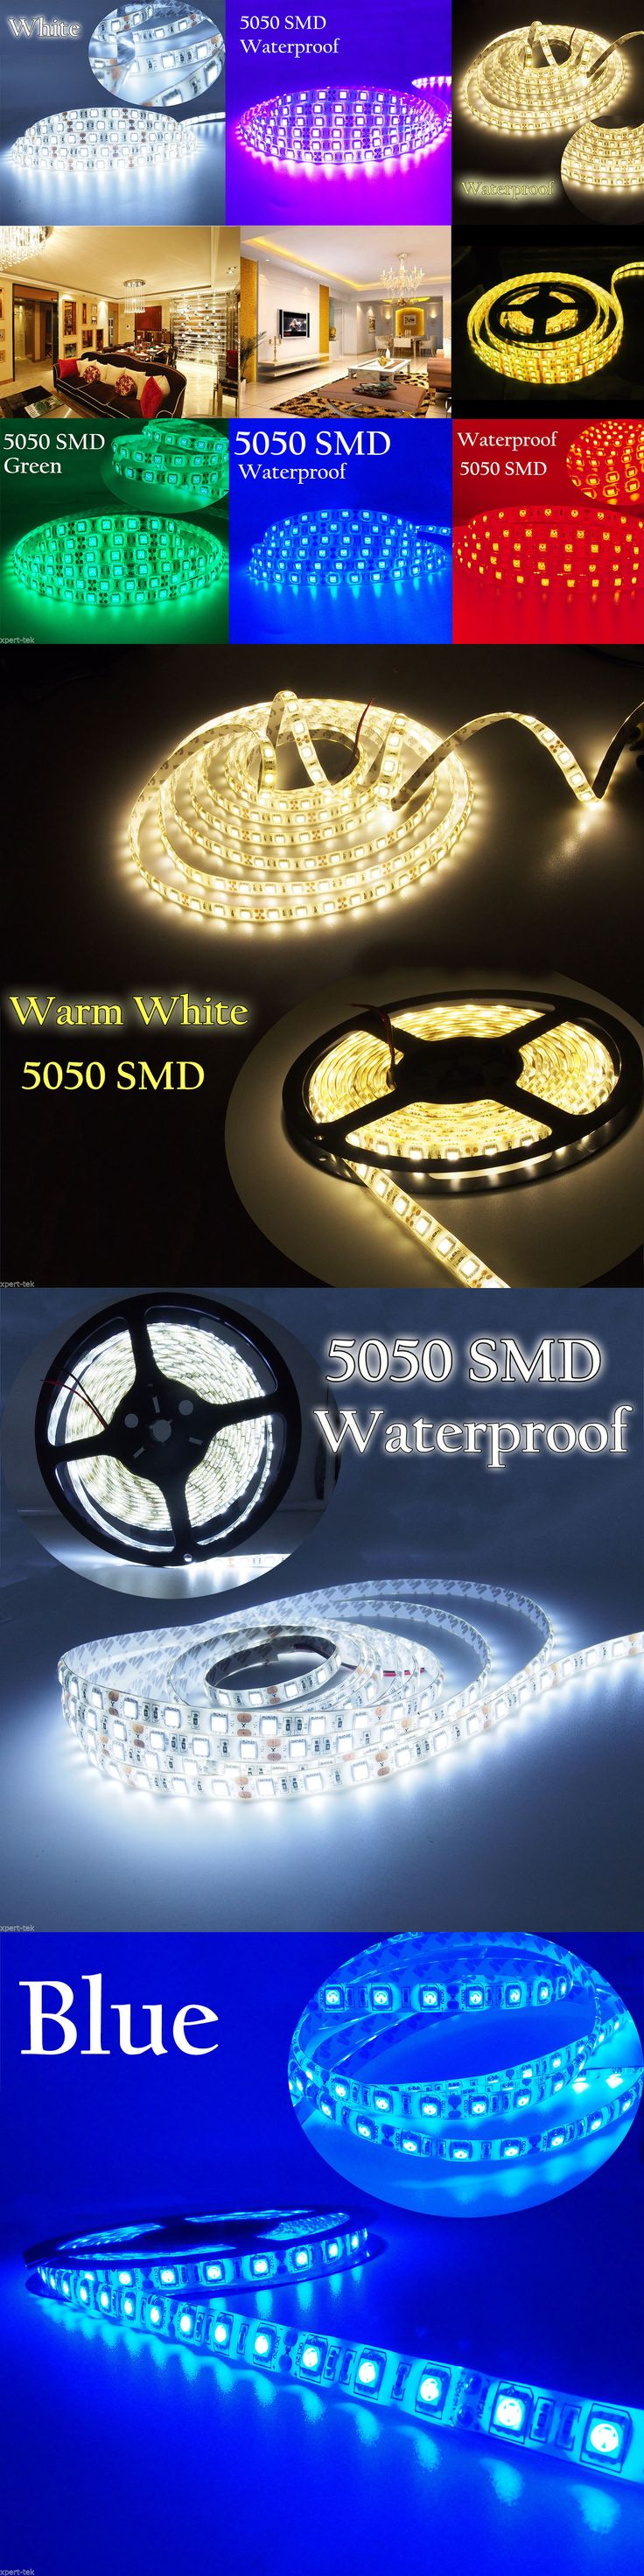 12w led 5050smd corn bulb spot light warm white lamp g4 ebay - Lamps And Lighting 5m 10m 5050 Smd 300 Leds Flexible Led 12v Strip Waterproof Outdoor